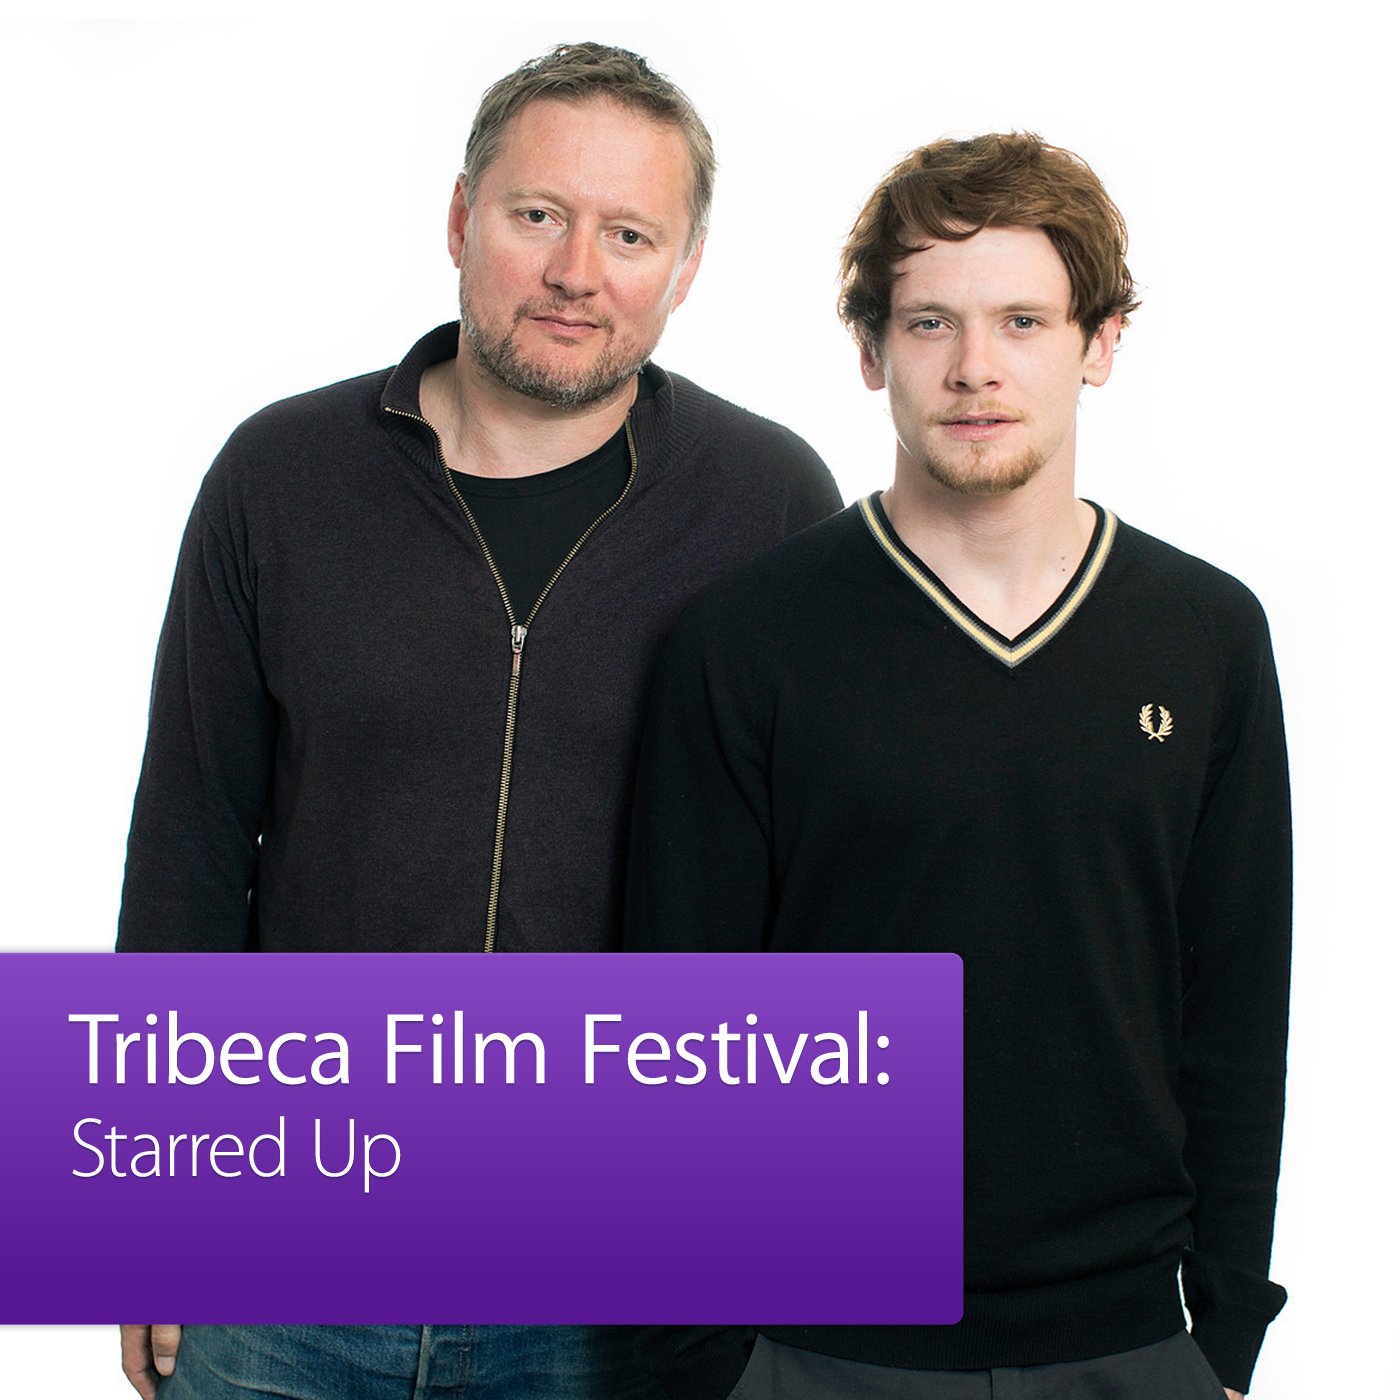 Starred Up: Tribeca Film Festival